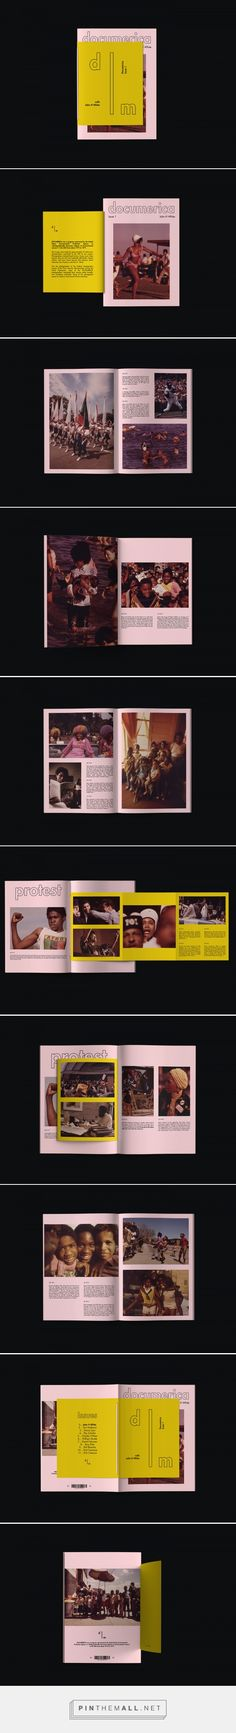 DOCUMERICA: Issue #1 - John H White on Behance... - a grouped images picture - Pin Them All